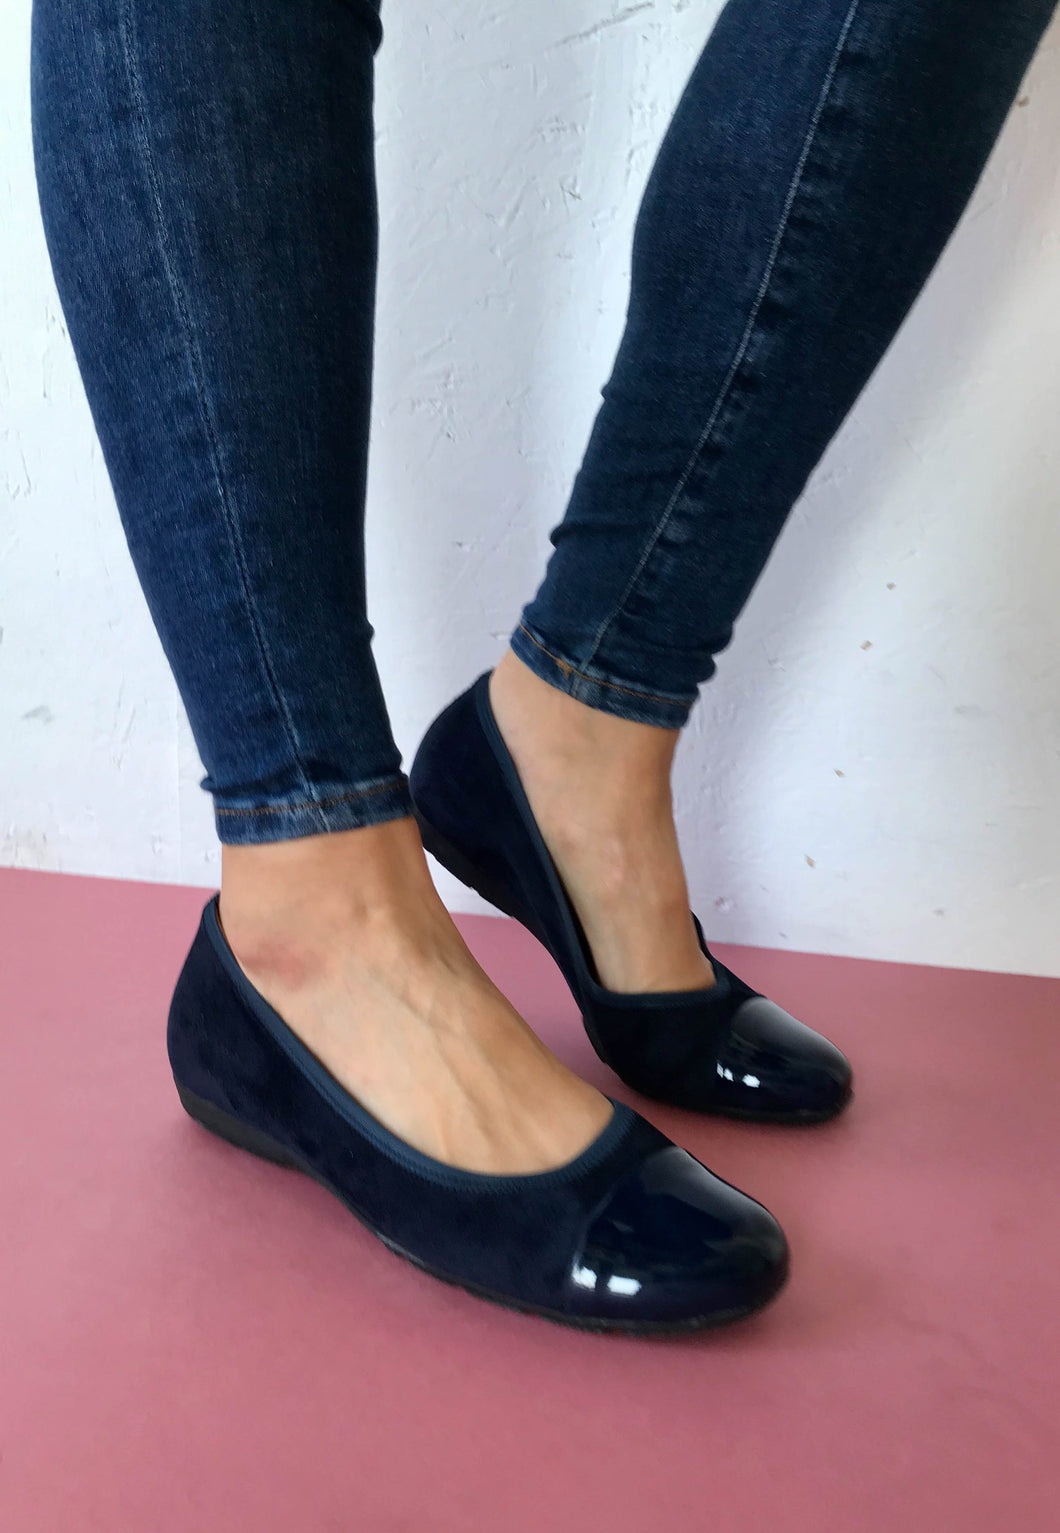 navy pump shoes